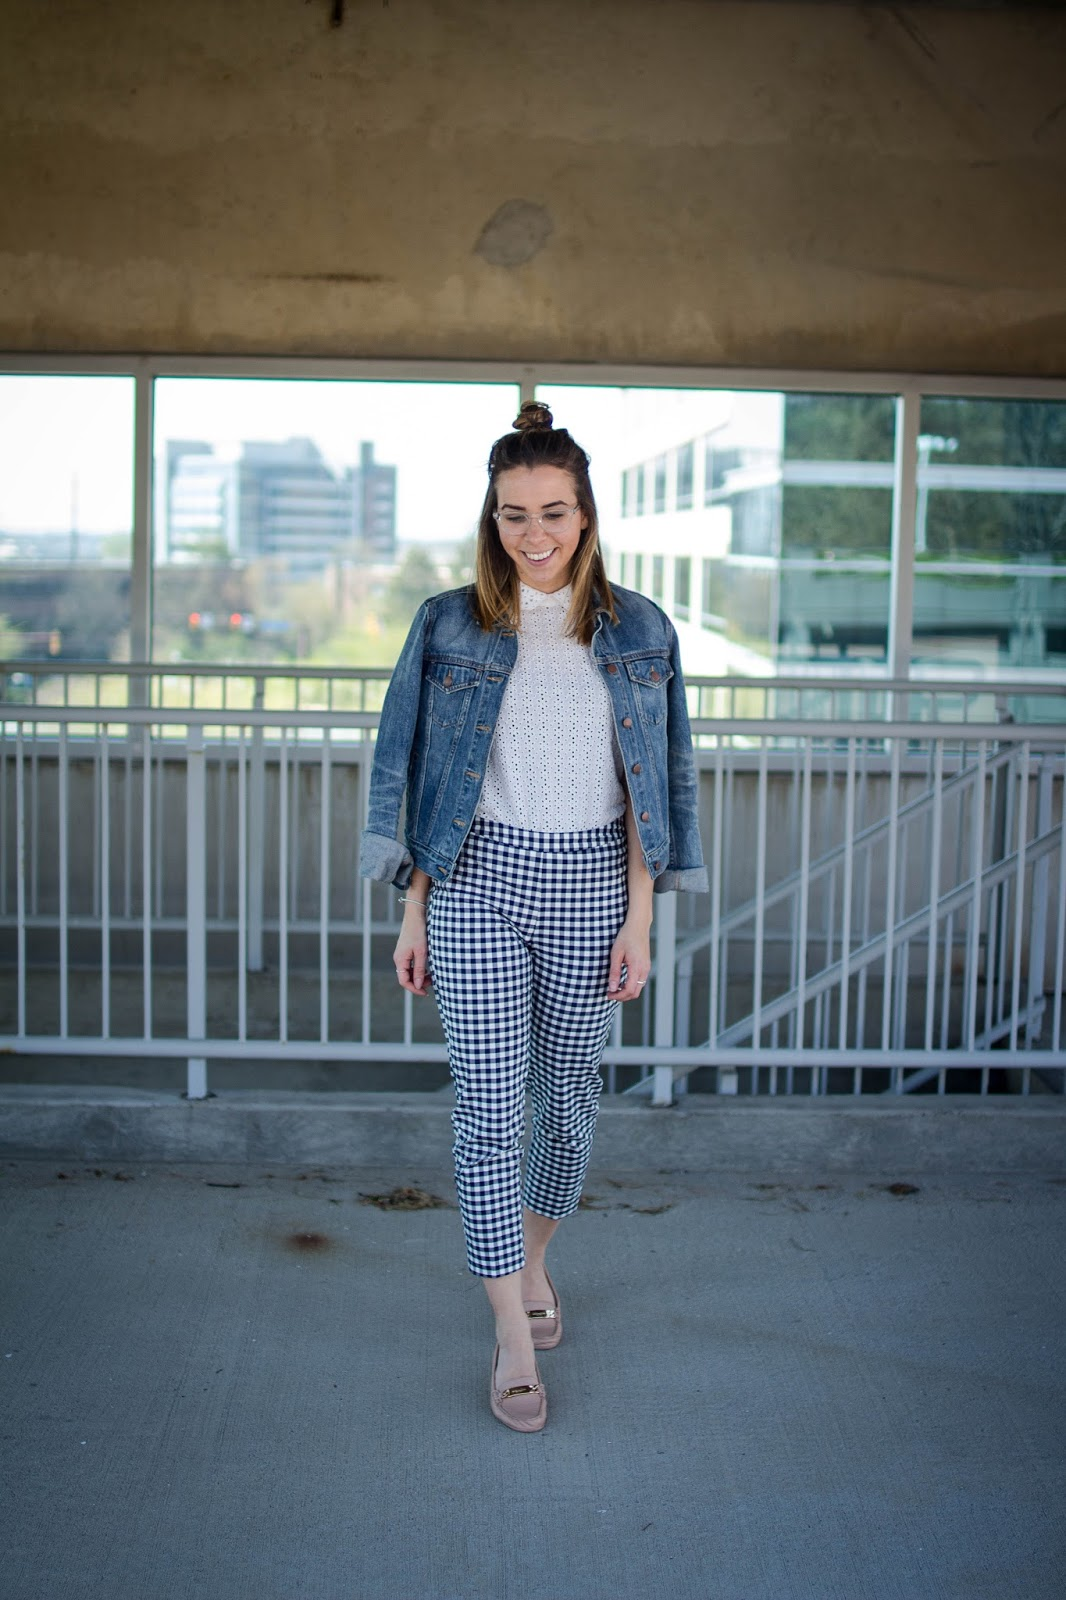 jean-jacket-spring-style-gingham-pants-victoria-beckham-target-eyelet-coach-loafers